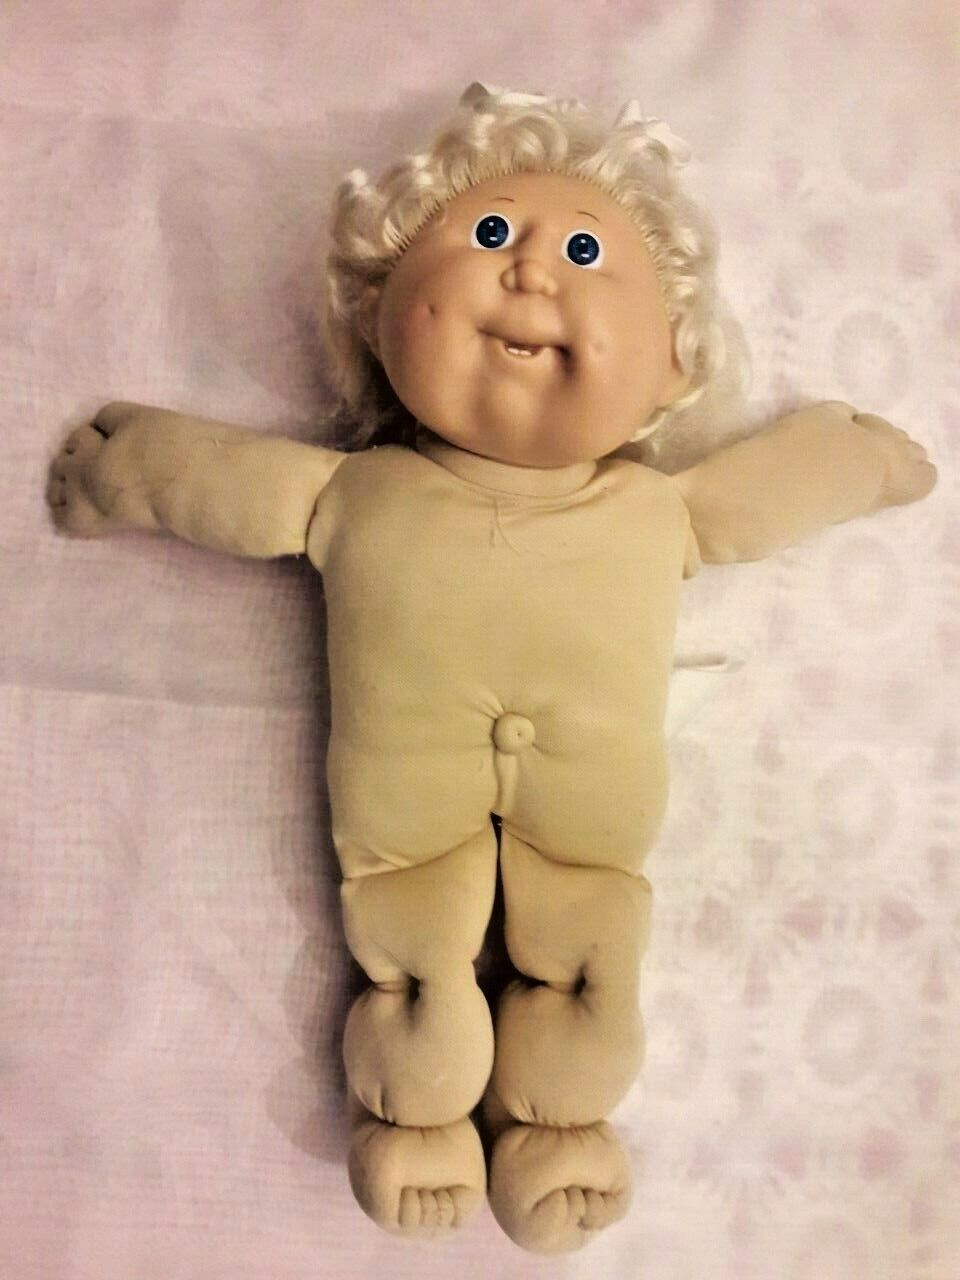 Vintage Signed Xavier Roberts Little People 1978-1983 Cabbage Patch Doll.